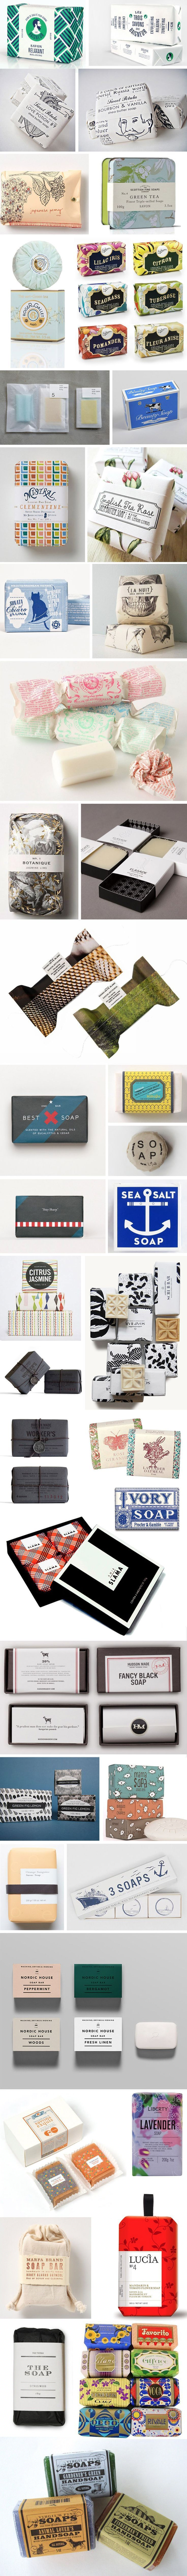 Lovely Soap collection! Curated by Packaging Diva